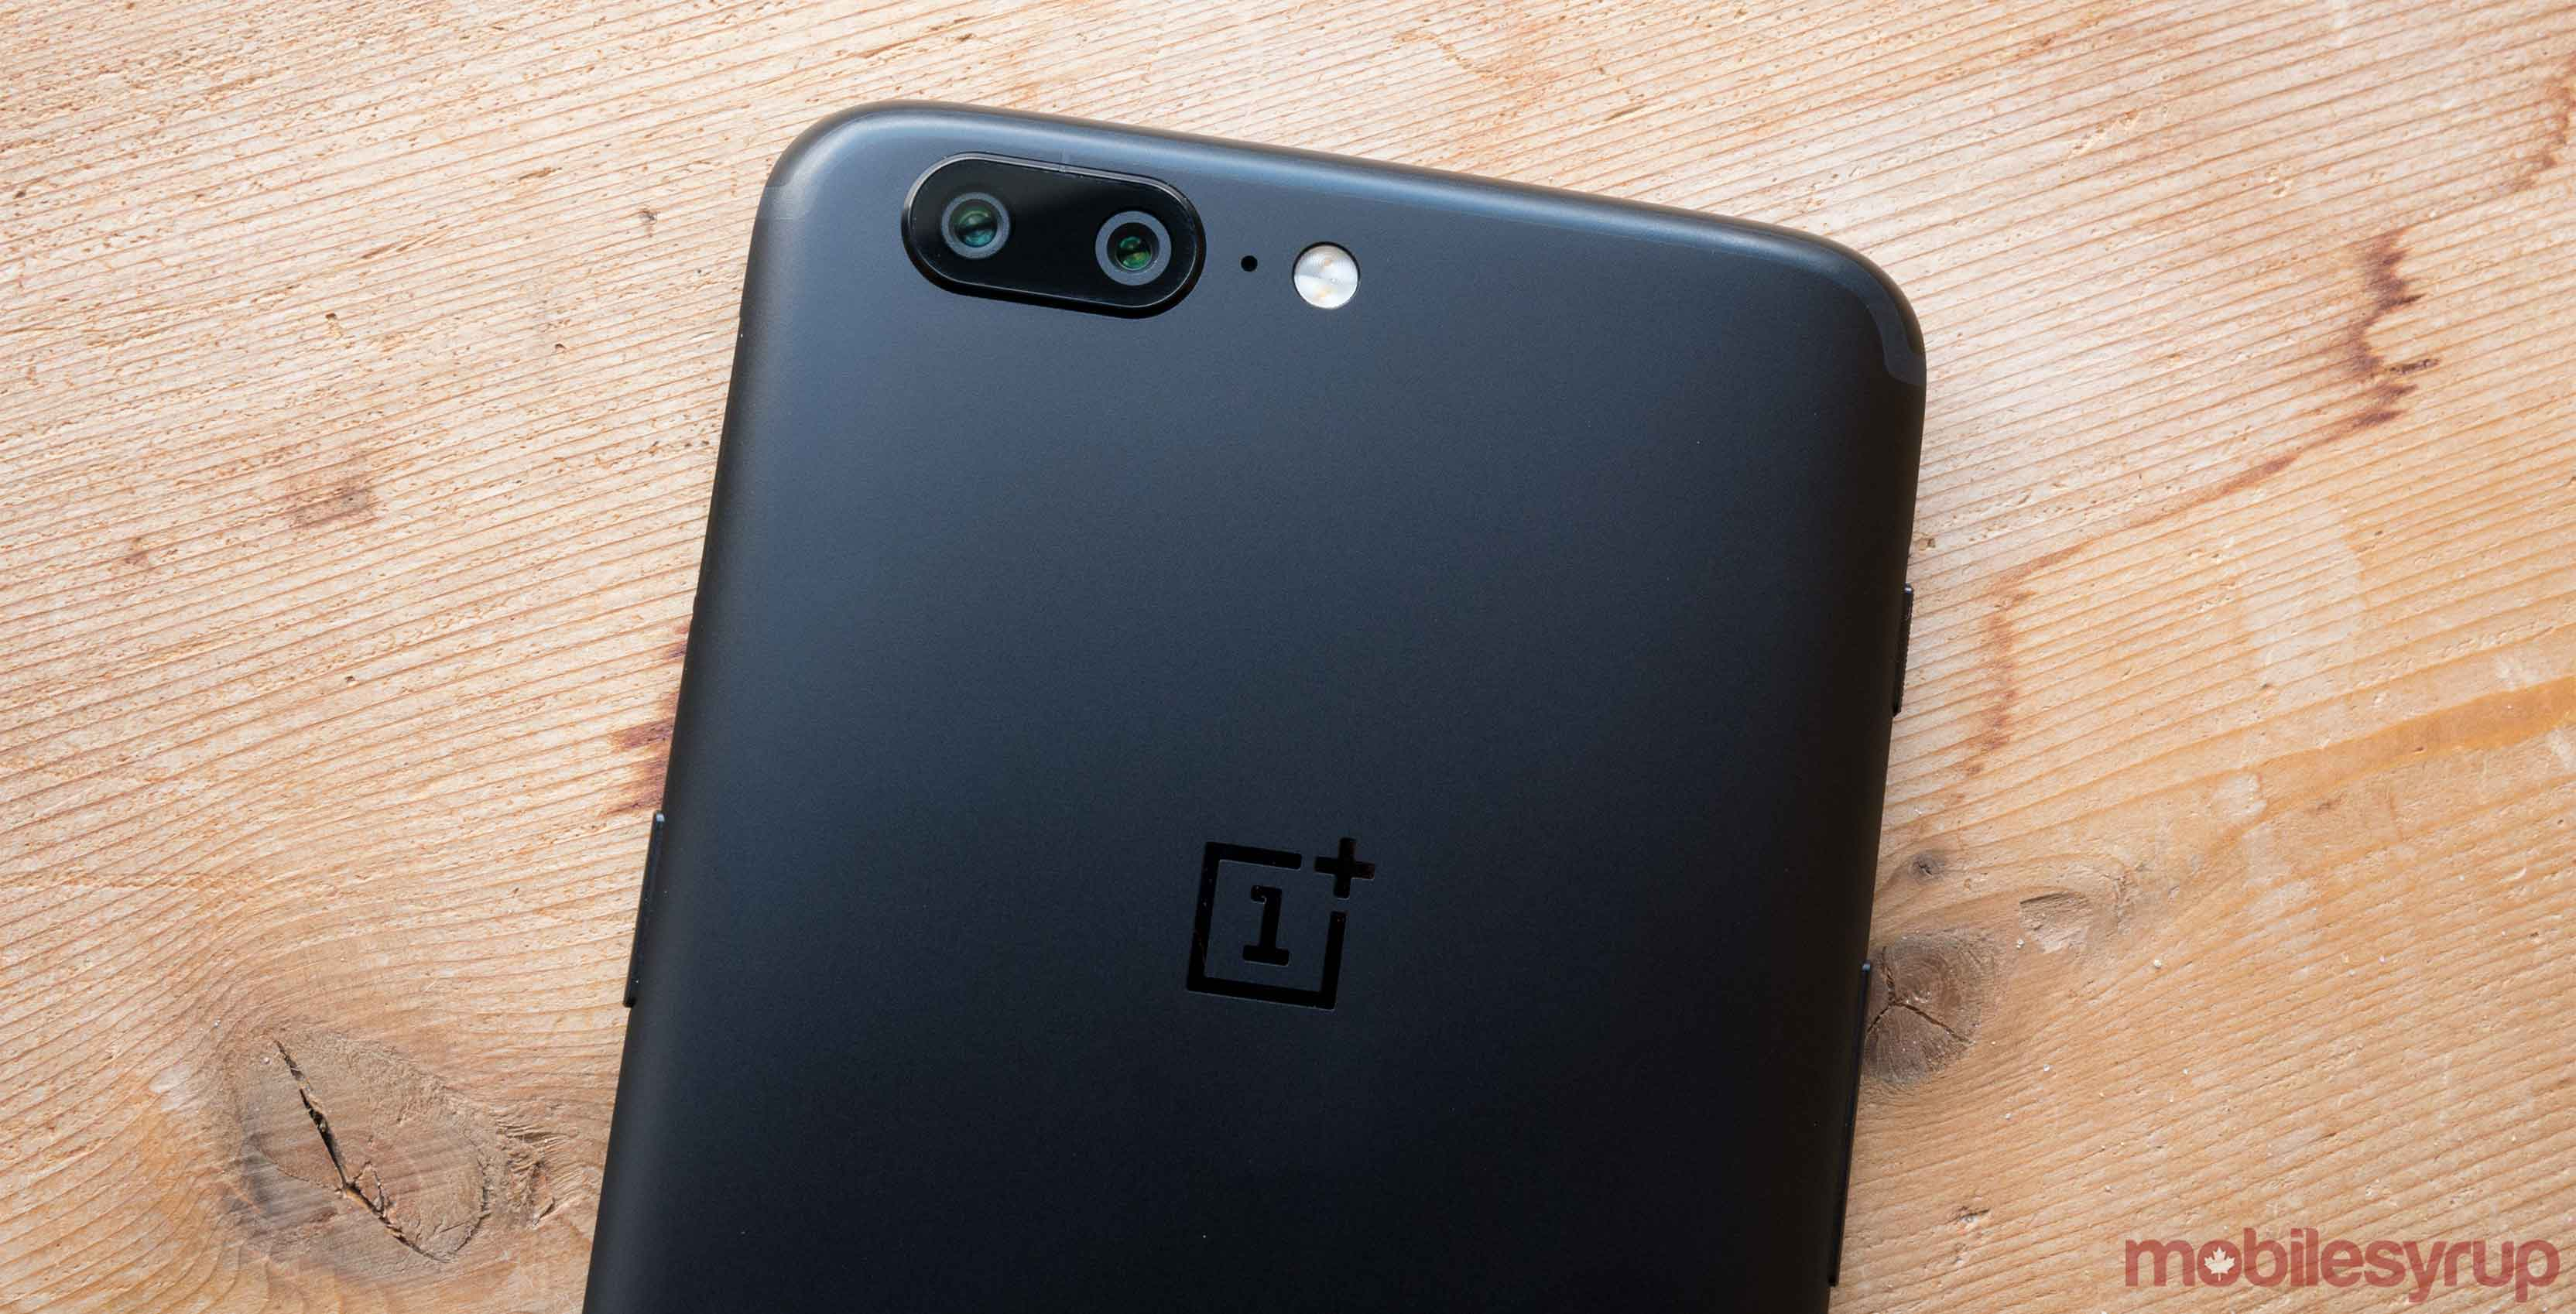 OnePlus gives students 10% off on its latest handset and accessories